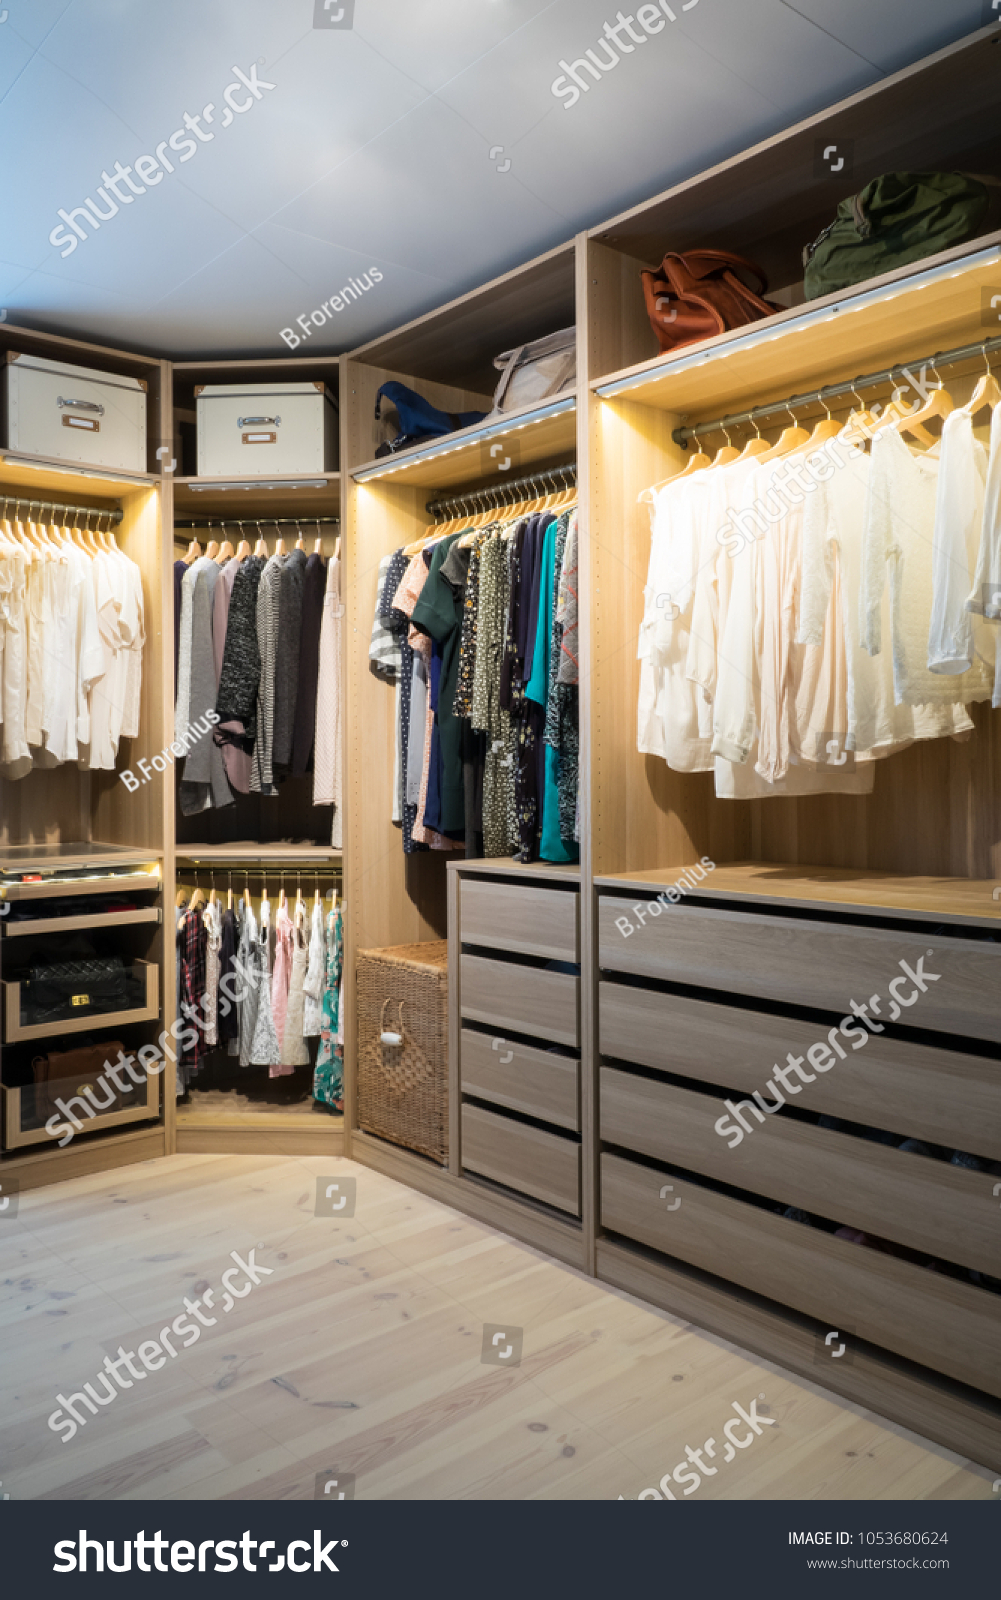 california lago storage design reach spaces solutions custom coffman walnut space closet roman for small ideas in gllry room closets